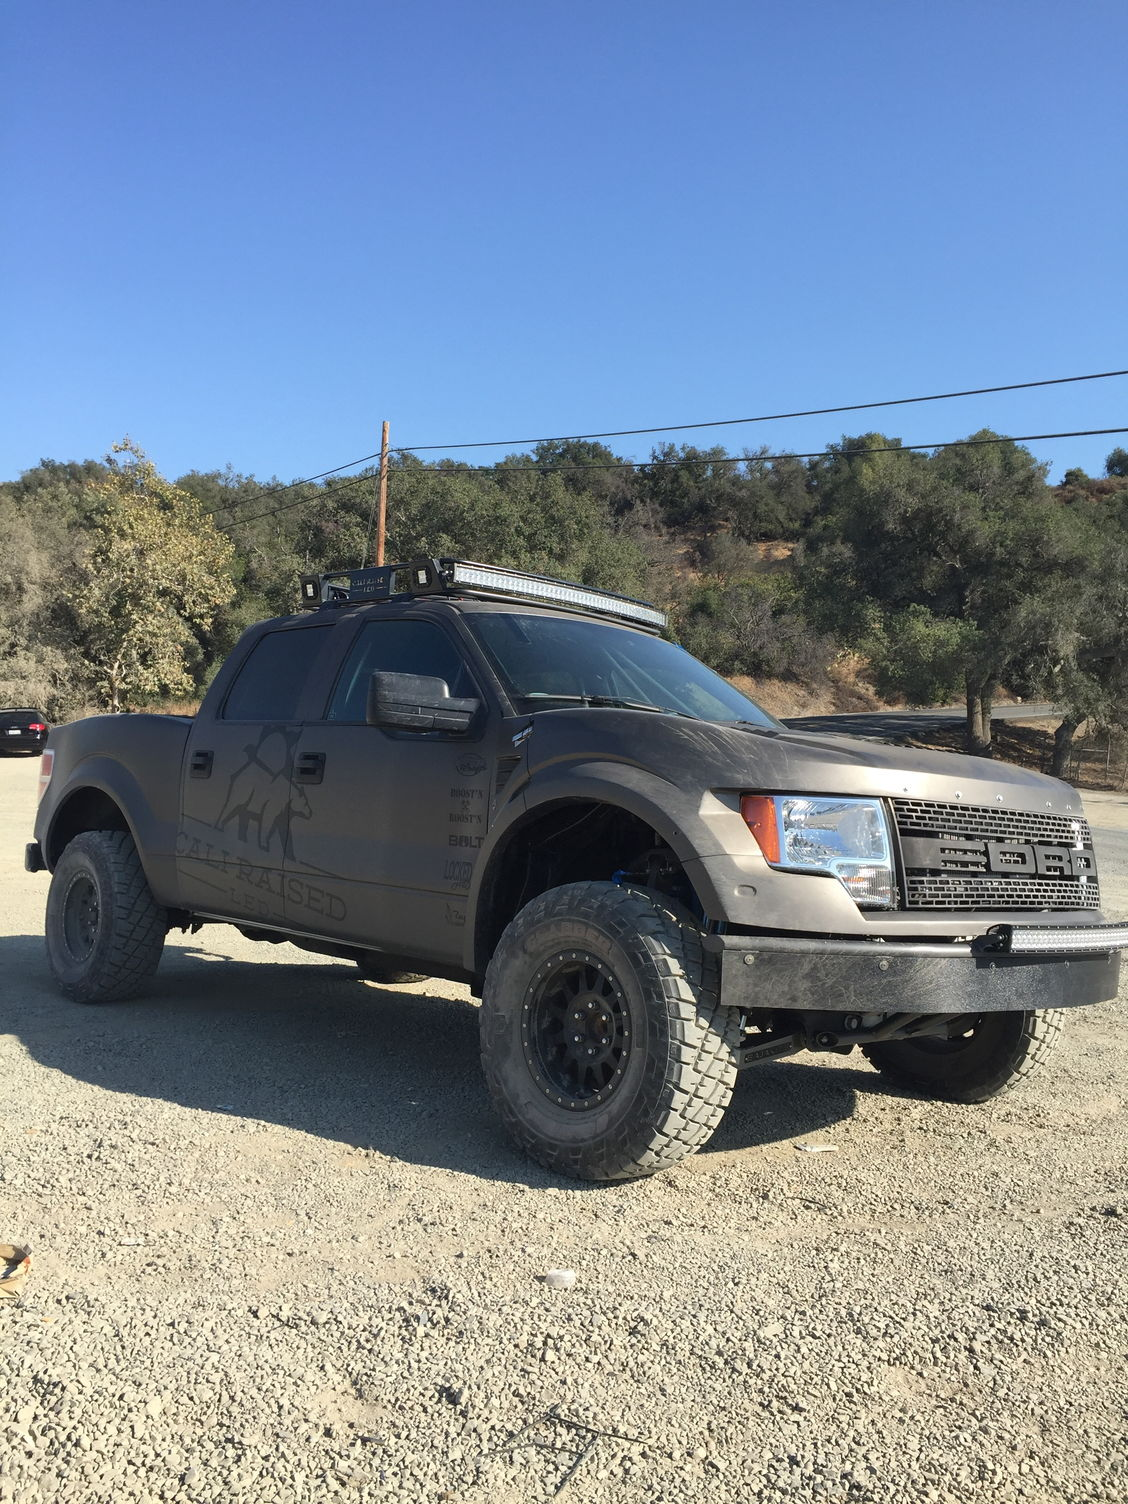 F150 Prerunner Images - Reverse Search